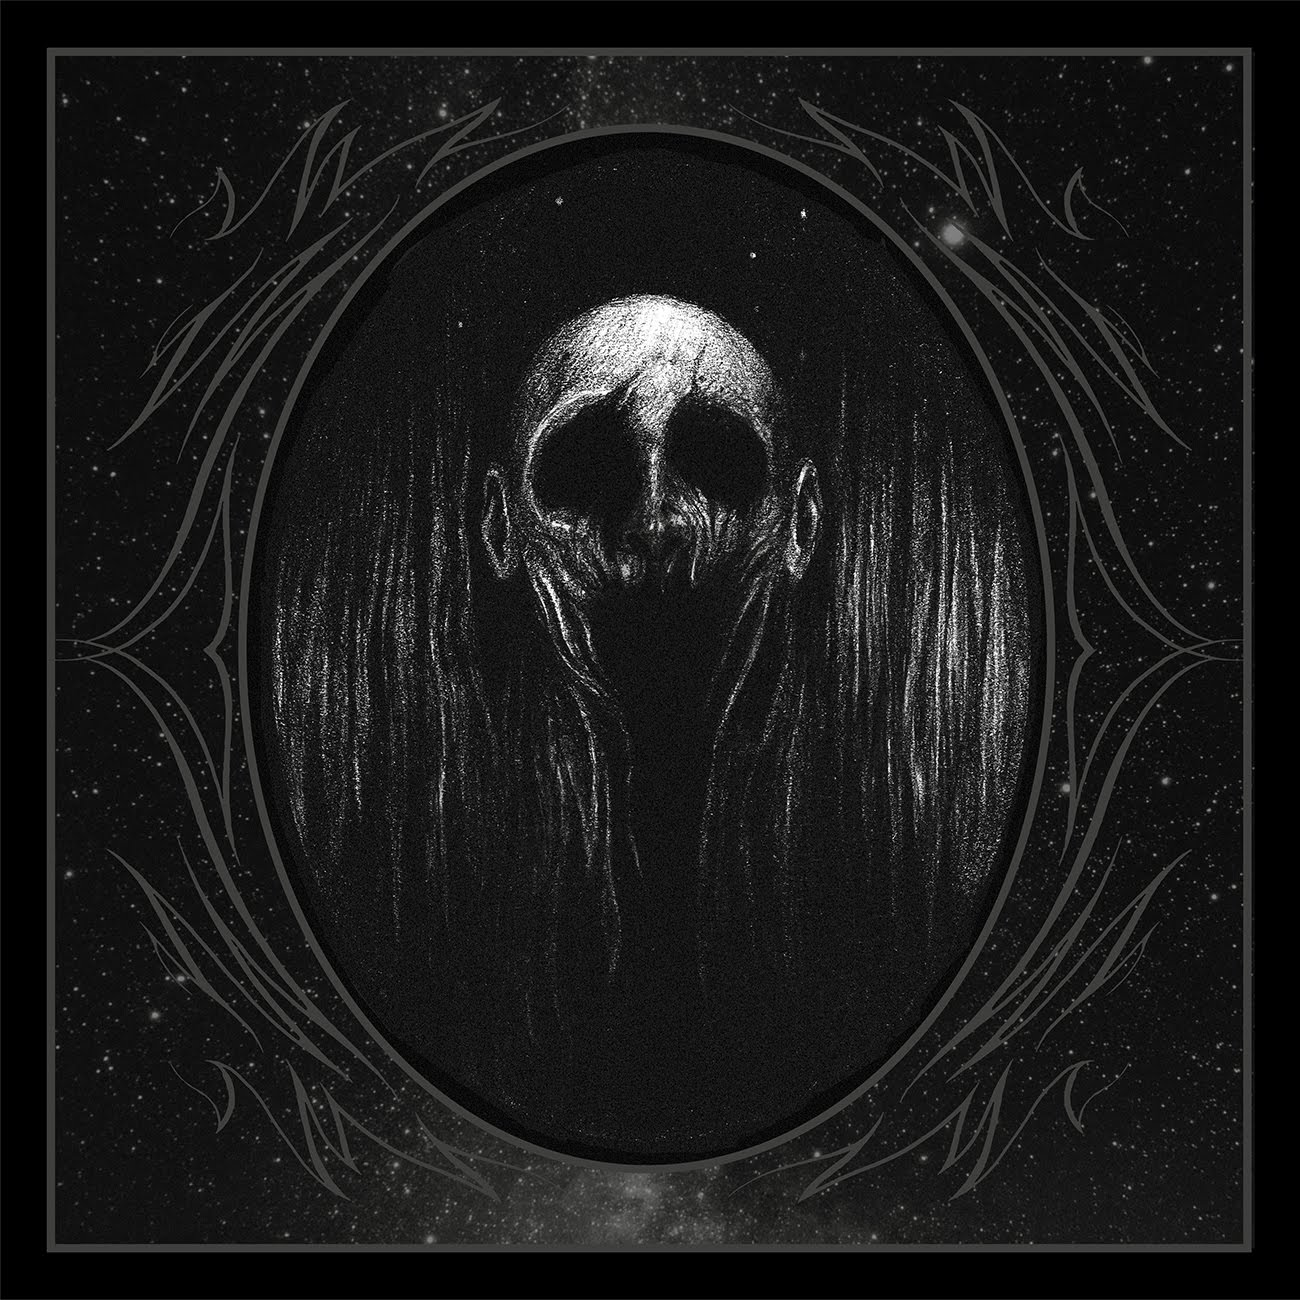 Exclusive Full LP Stream + Interview - Veiled - Black Celestial Orbs.